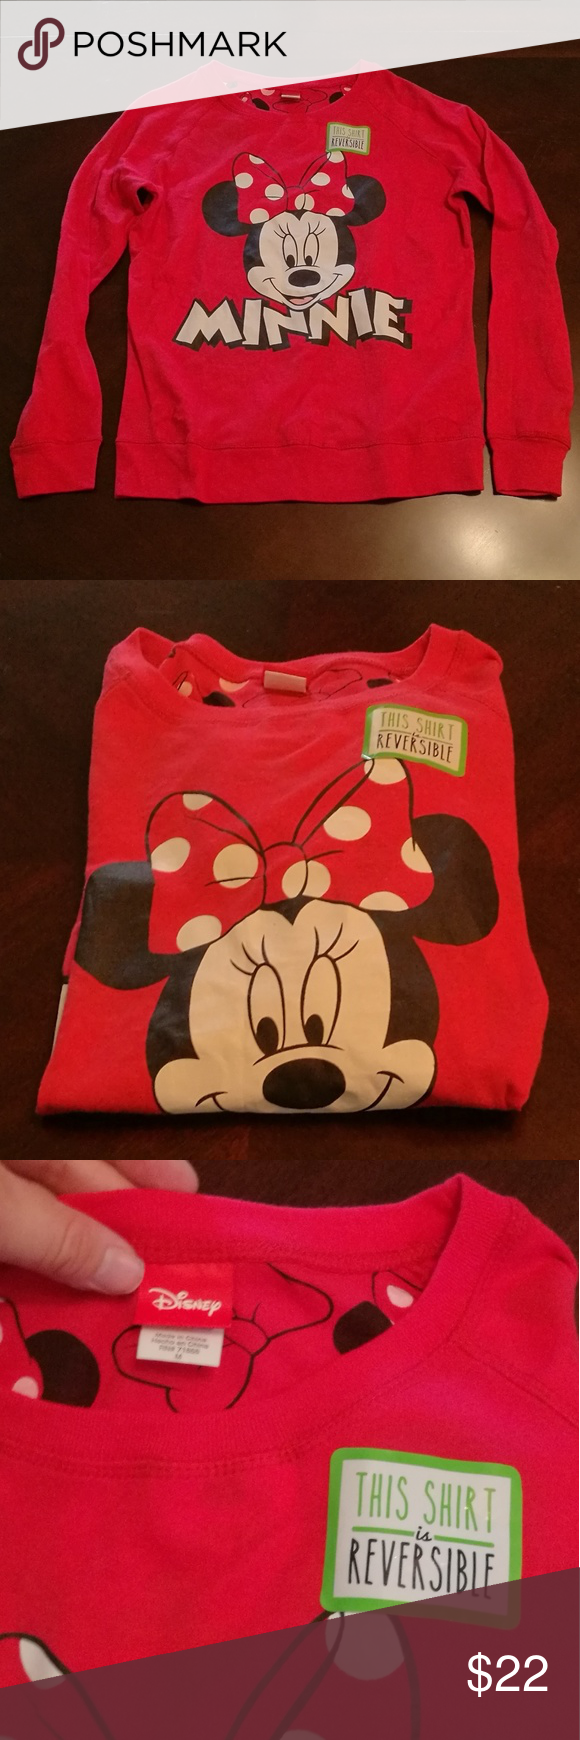 Reversible Disney Minnie Mouse top -NWOT Disney shirt new w/out tags. Reversible. Pictures of both inside and out included. Disney Tops